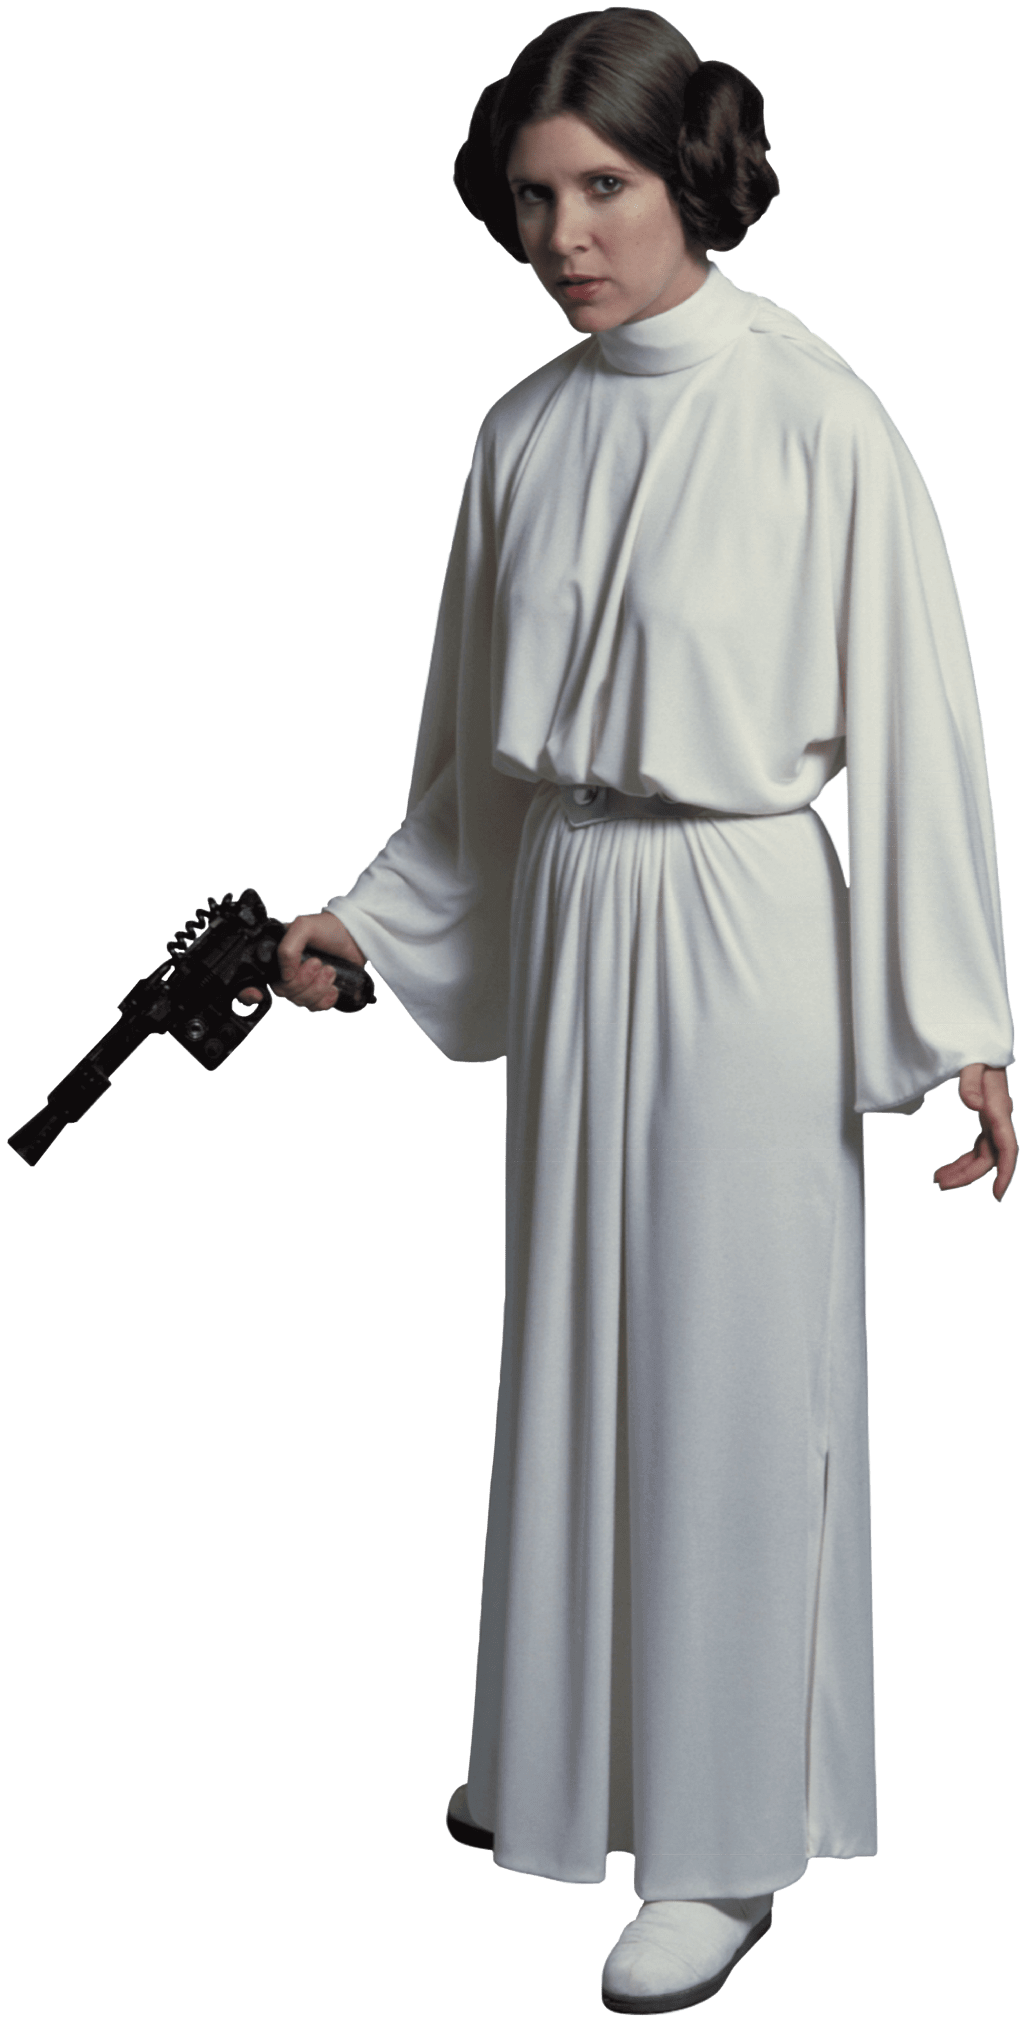 Star wars princess leia clipart image royalty free library Princess Leia Standing Transparent PNG image royalty free library